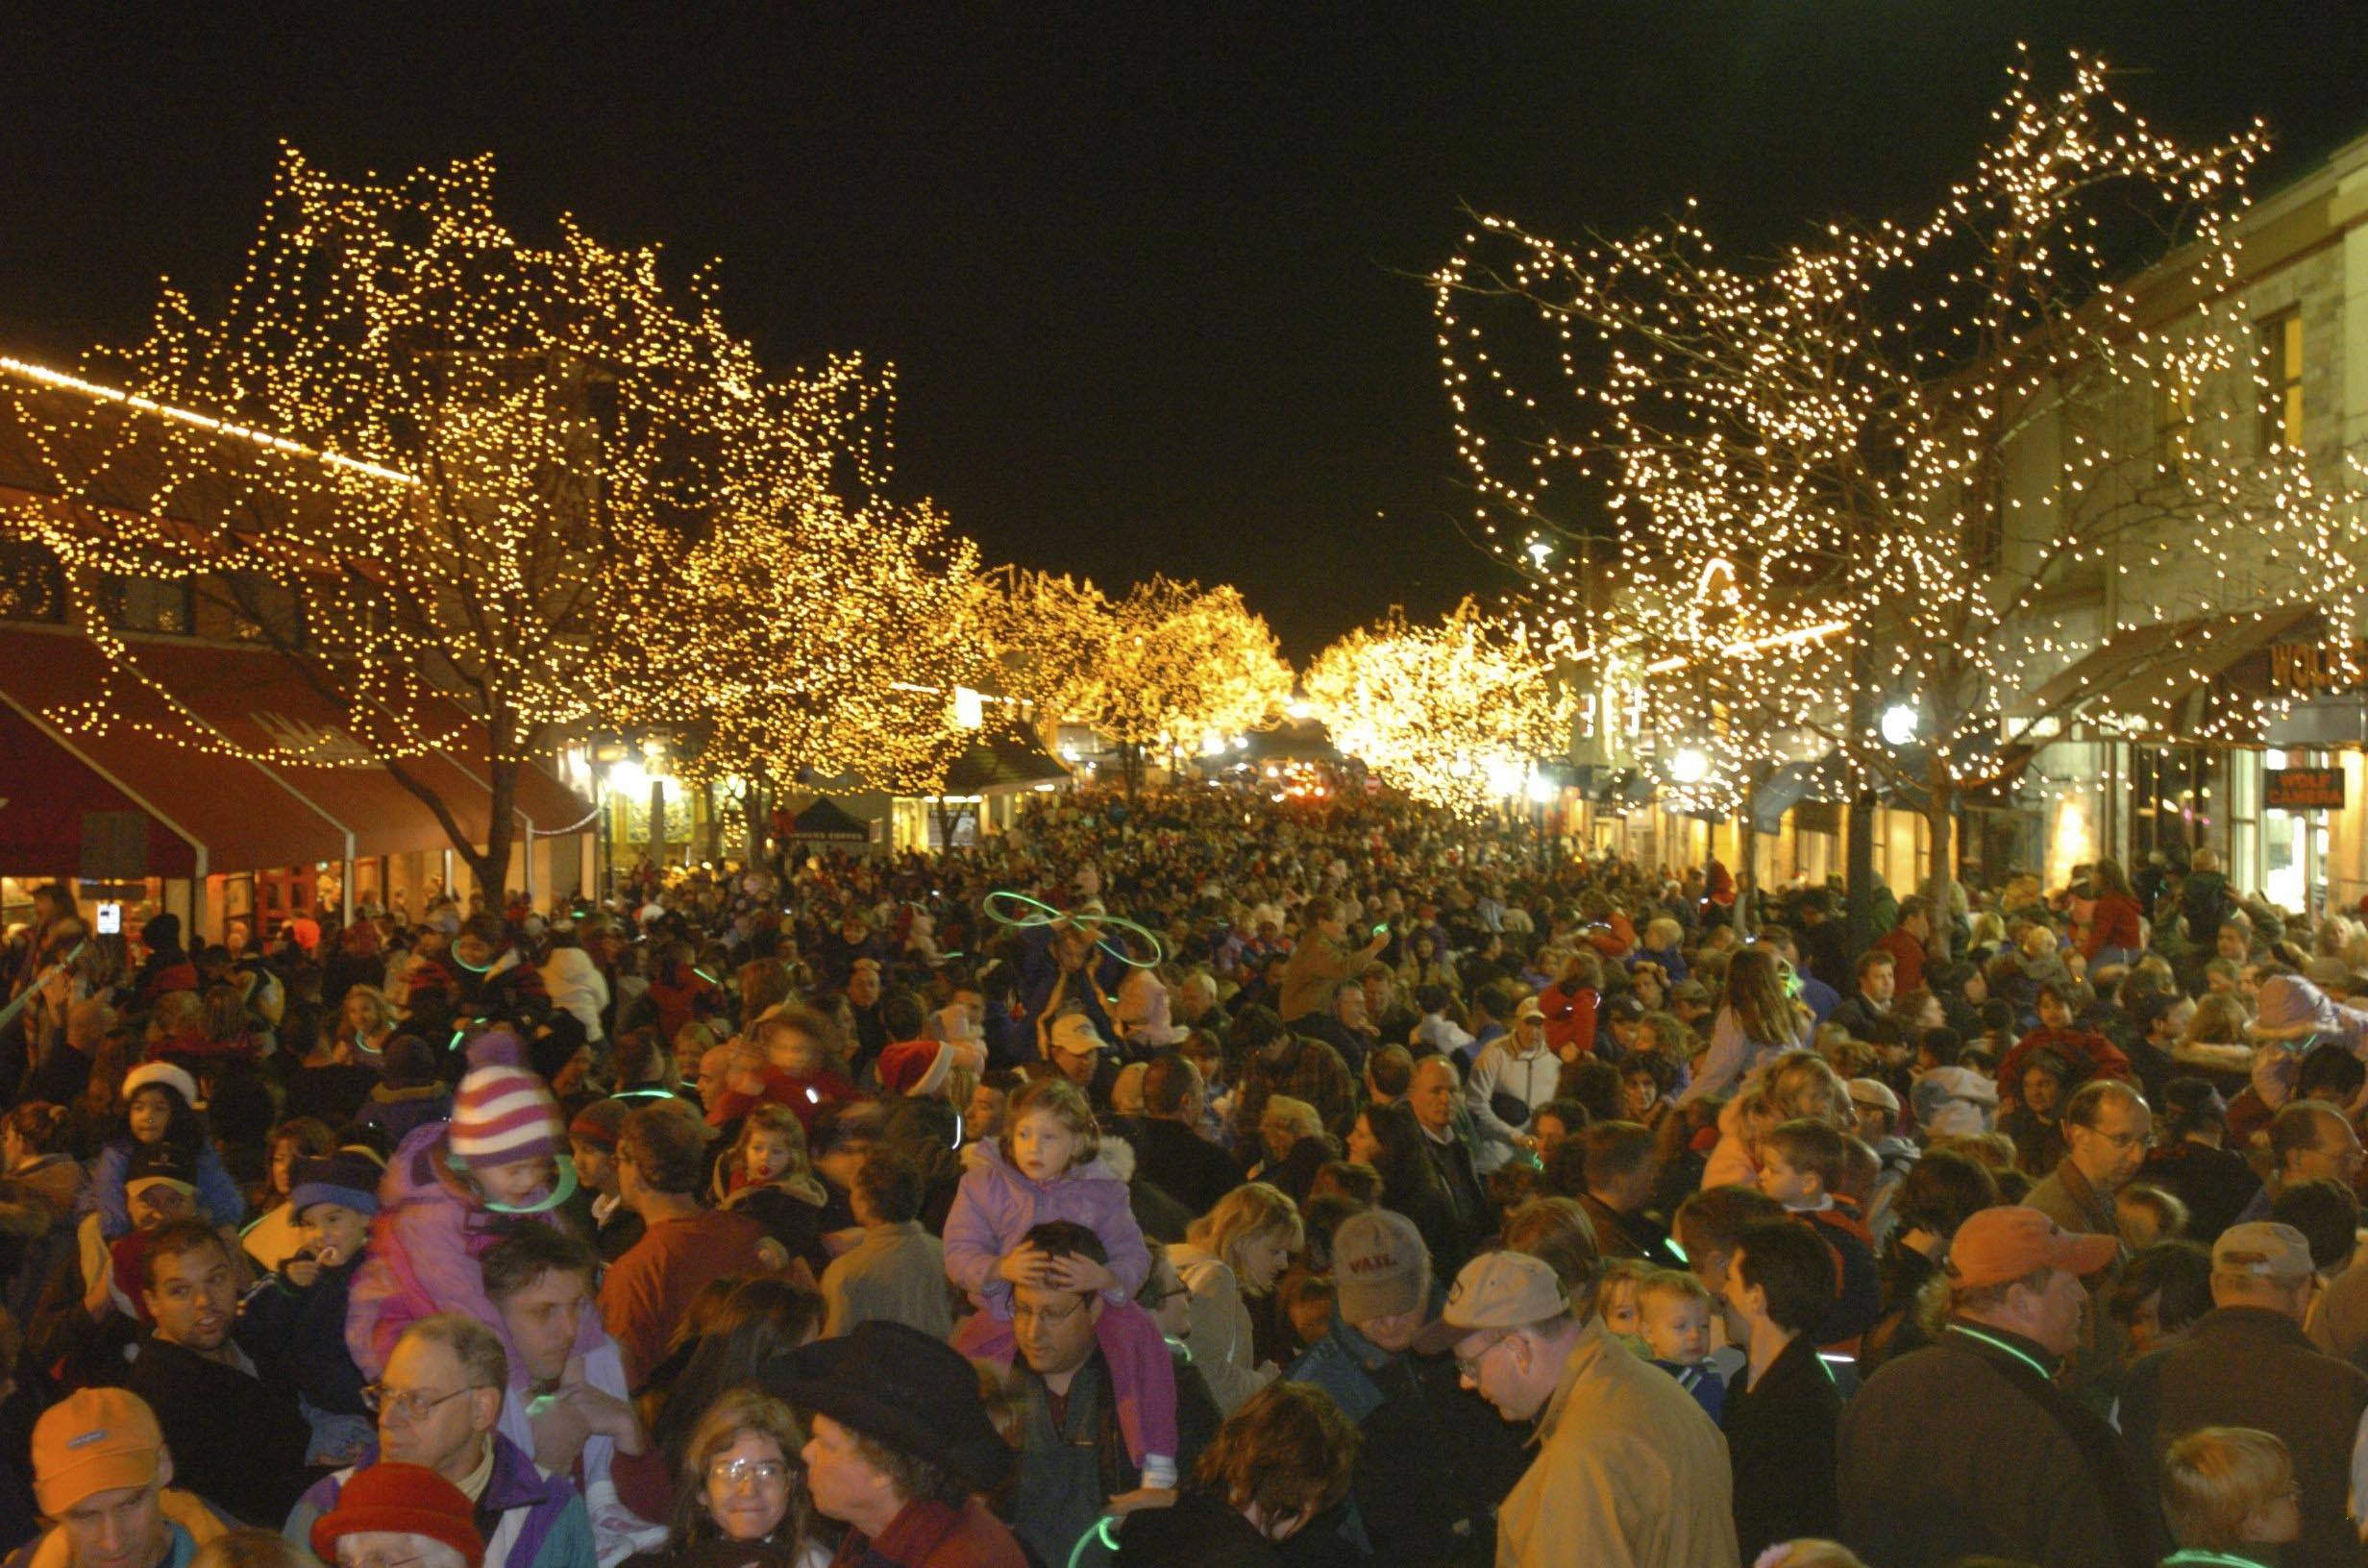 Welcoming lights' ring in Naperville Marathon, holiday season